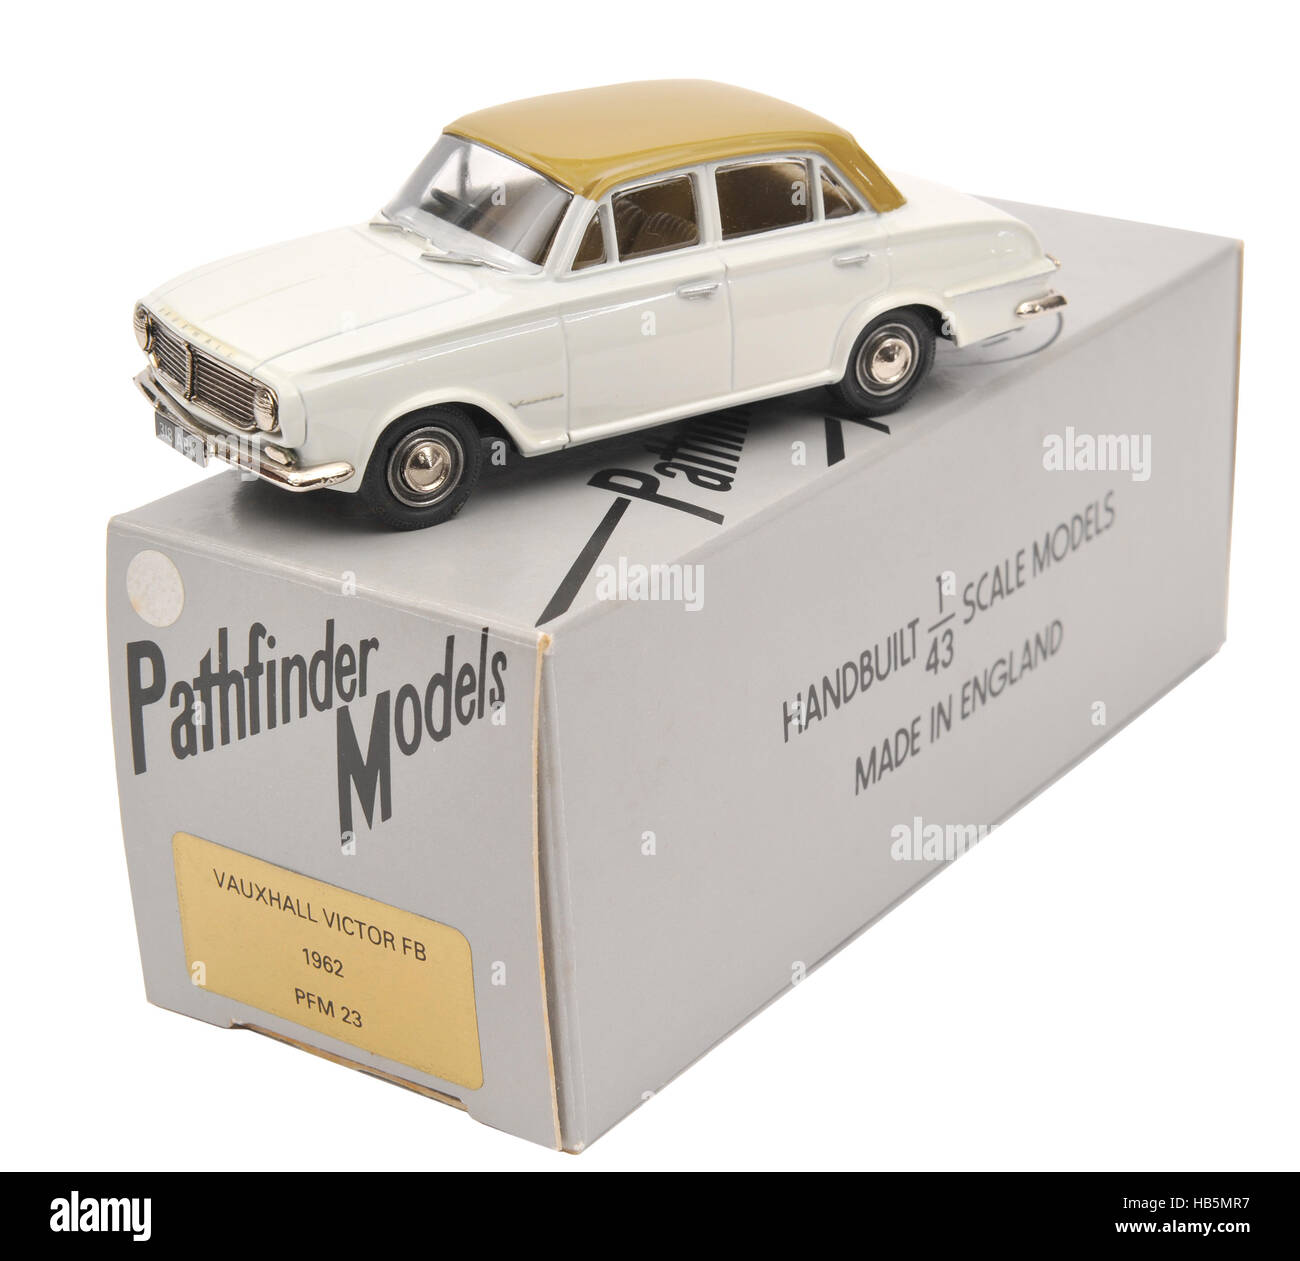 Diecast metal scale model of a 1962 Vauxhall Victor FB motor car Stock Photo